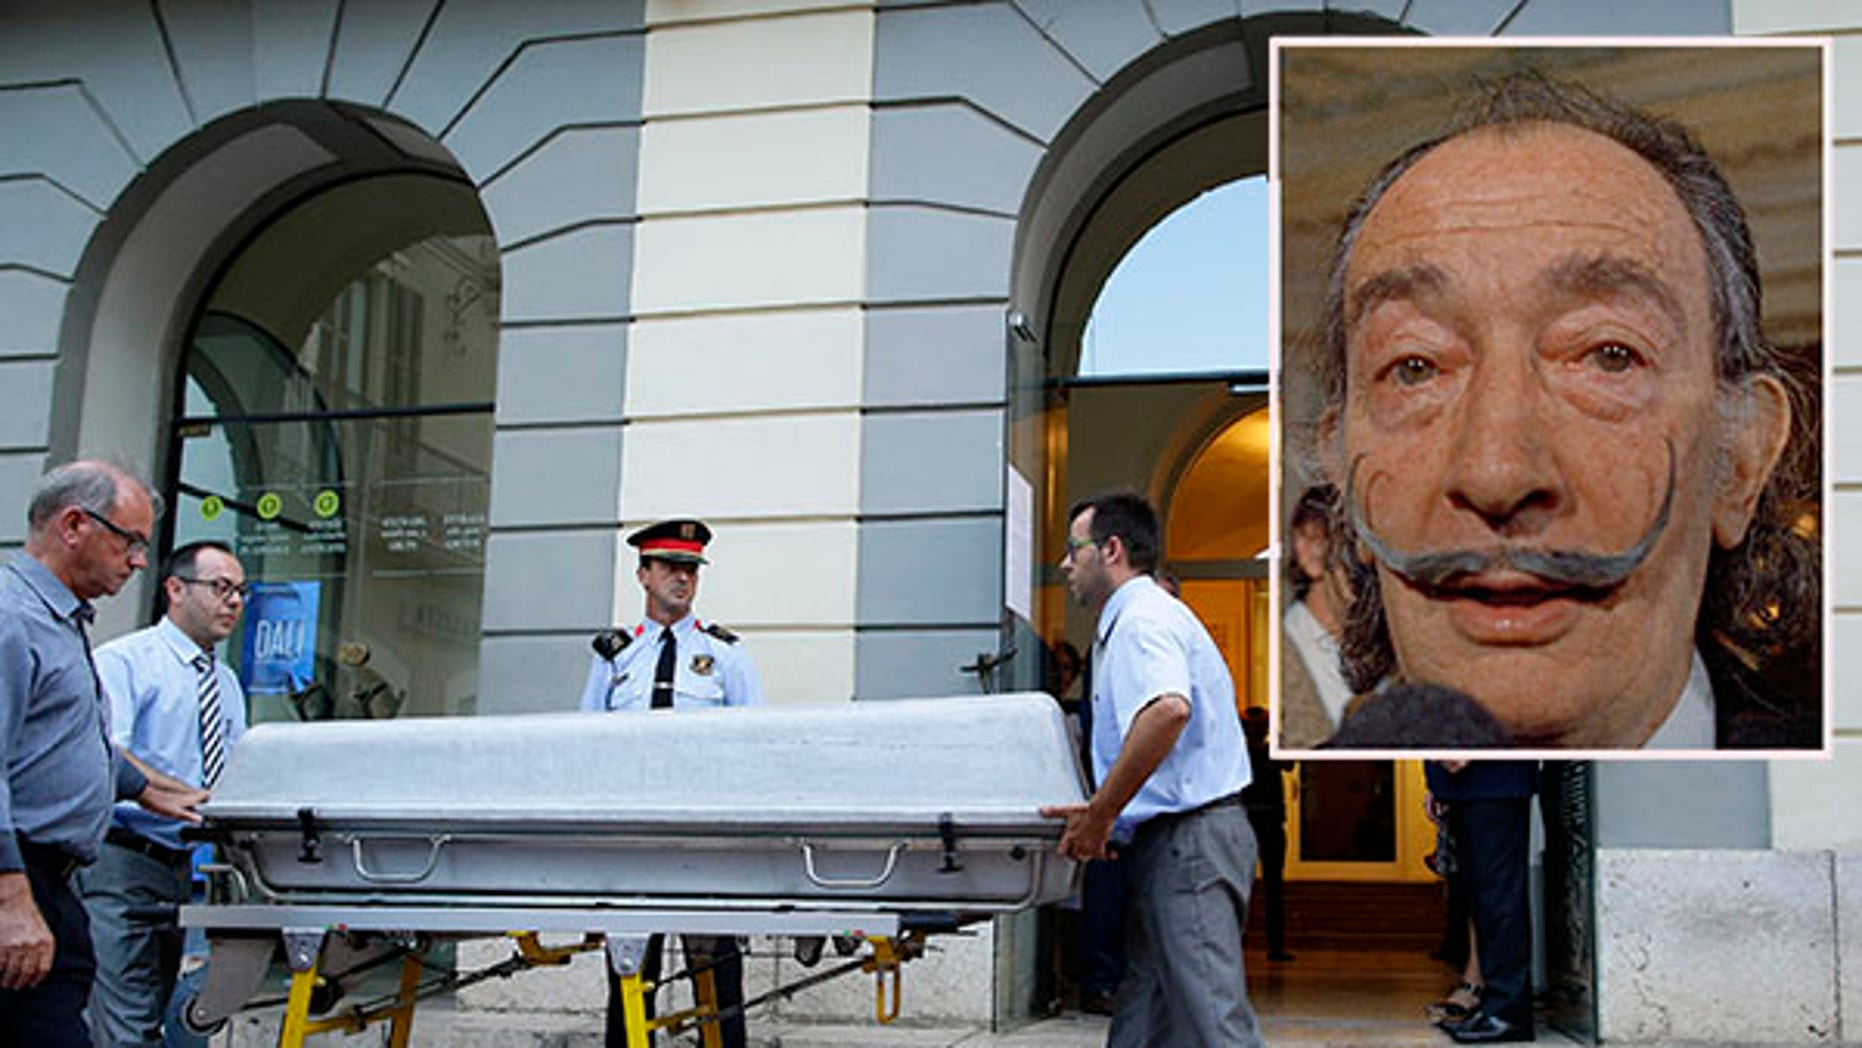 Workers bring a casket to the Dali Theater Museum in Spain.